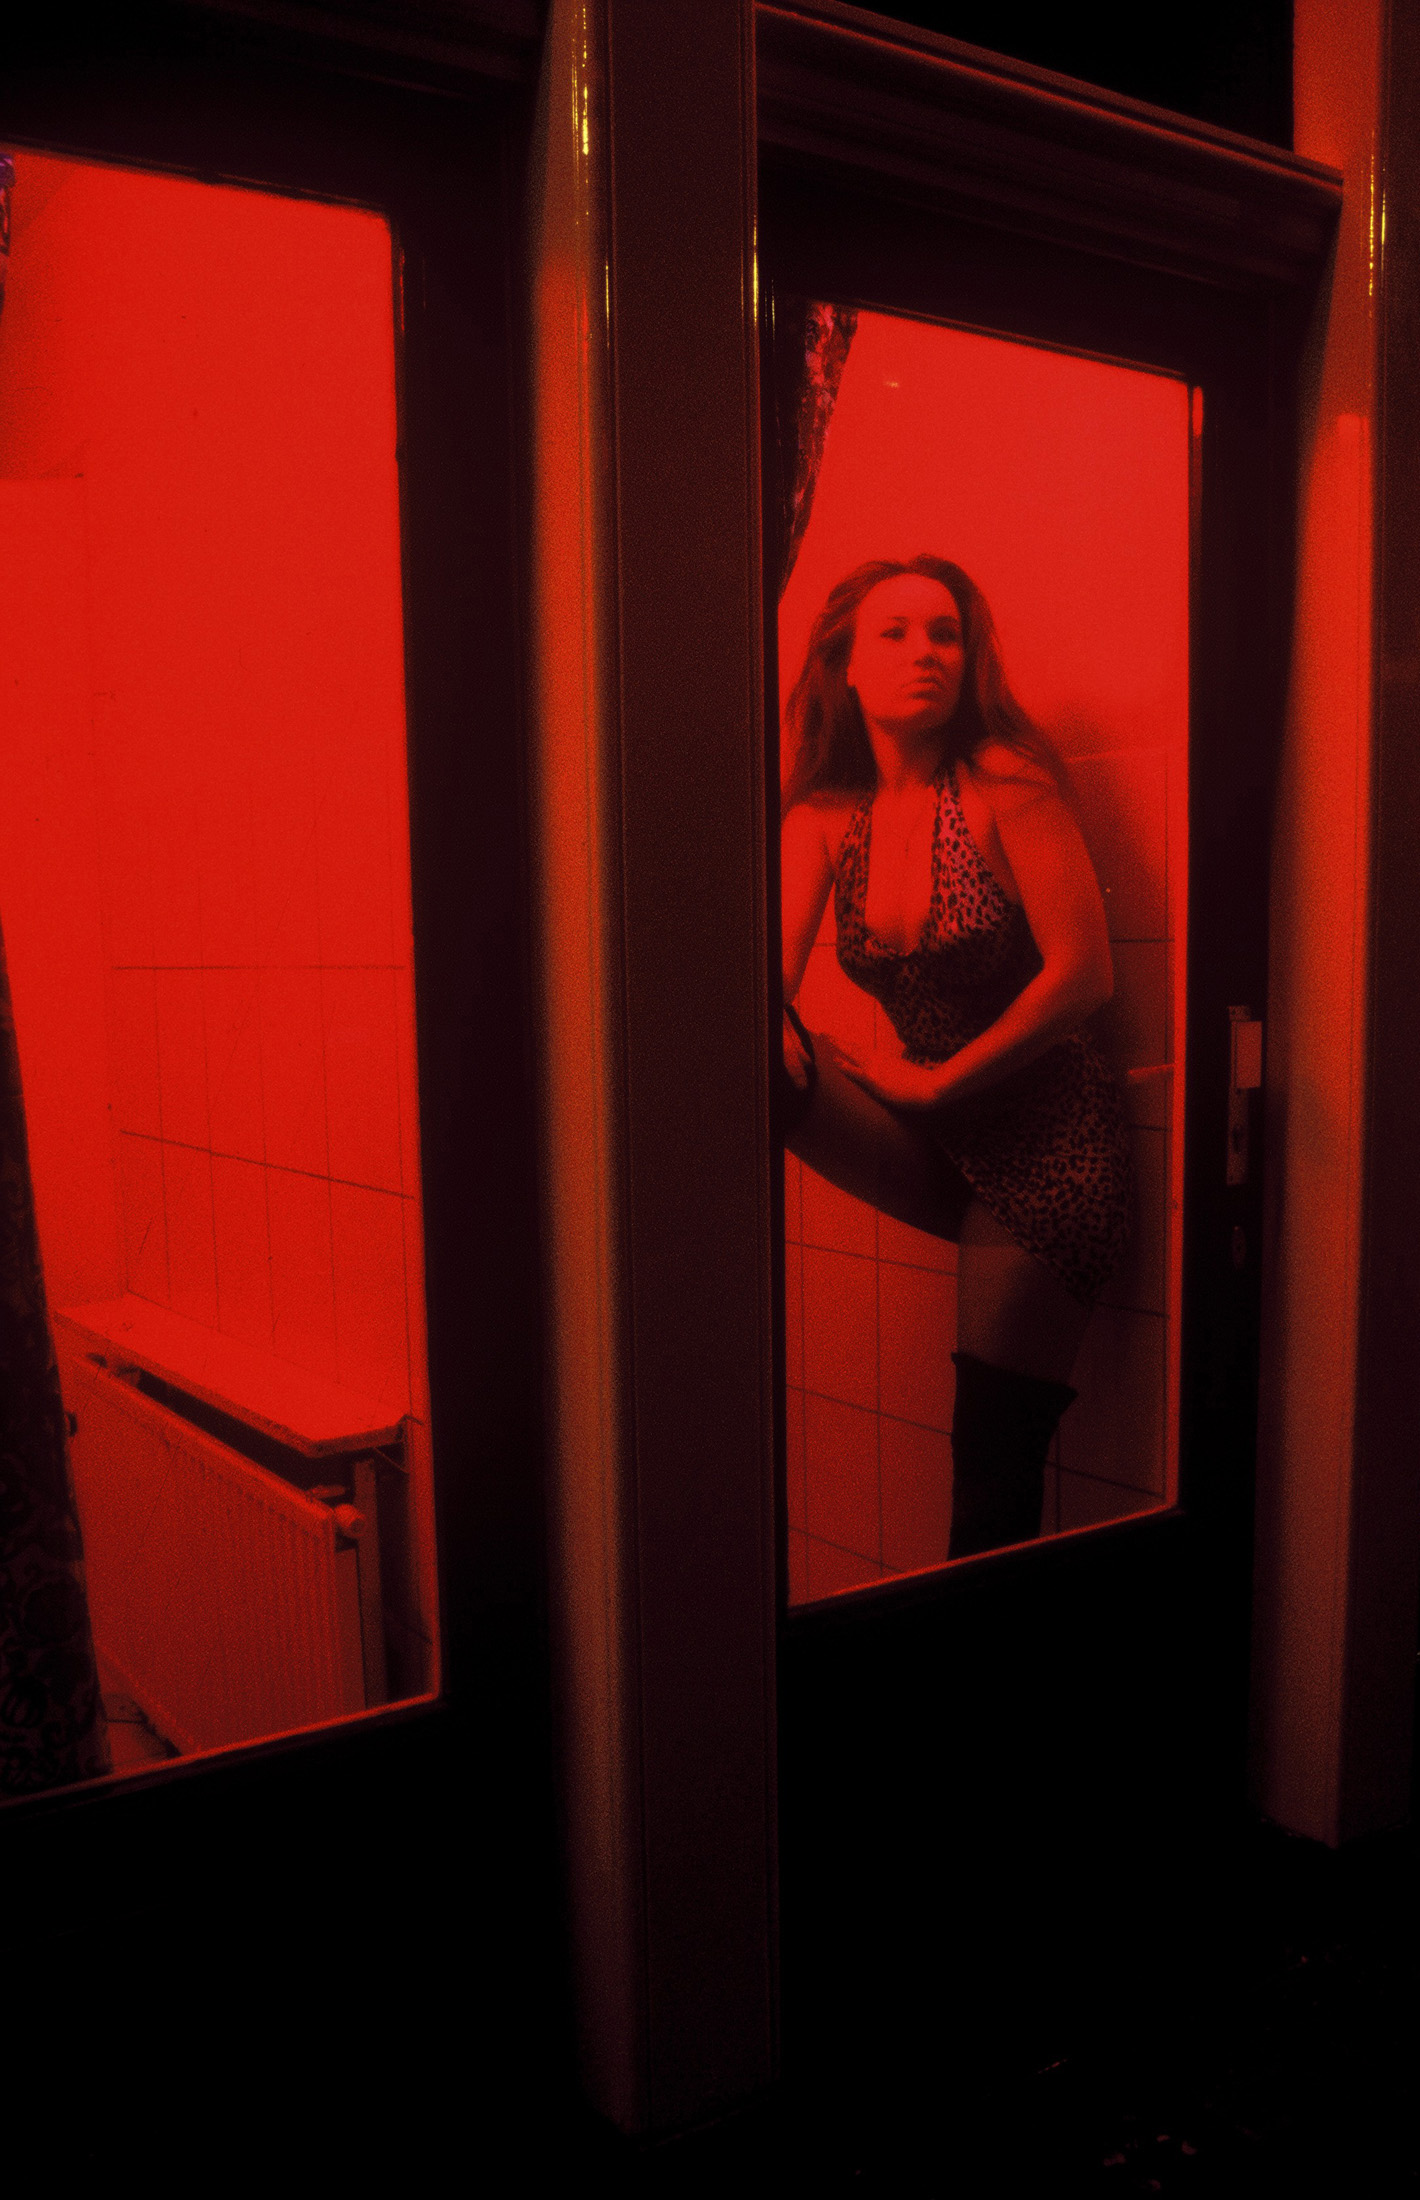 A Dutch prostitute sits behind her window in the red light district in Amsterdam, The Netherlands